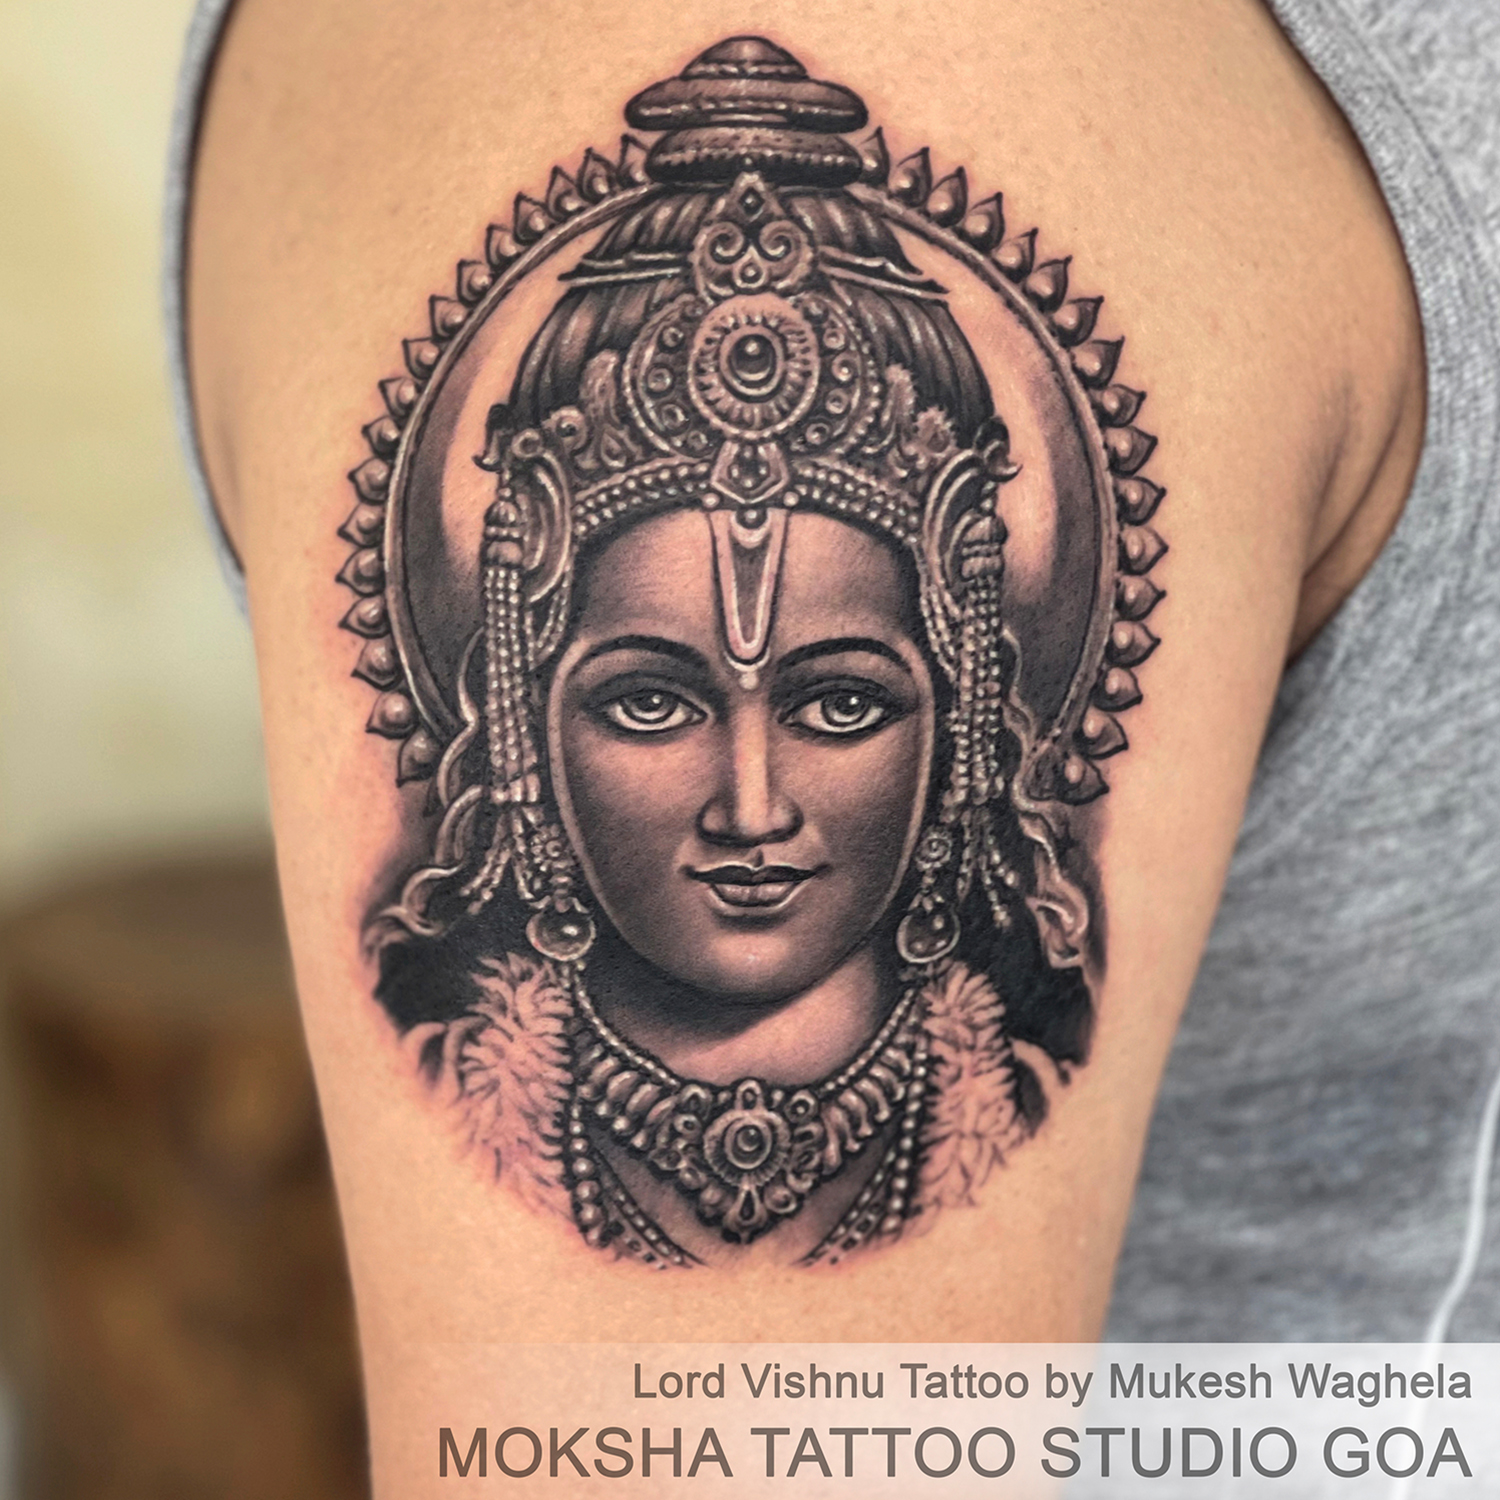 Lord Vishnu Tattoo